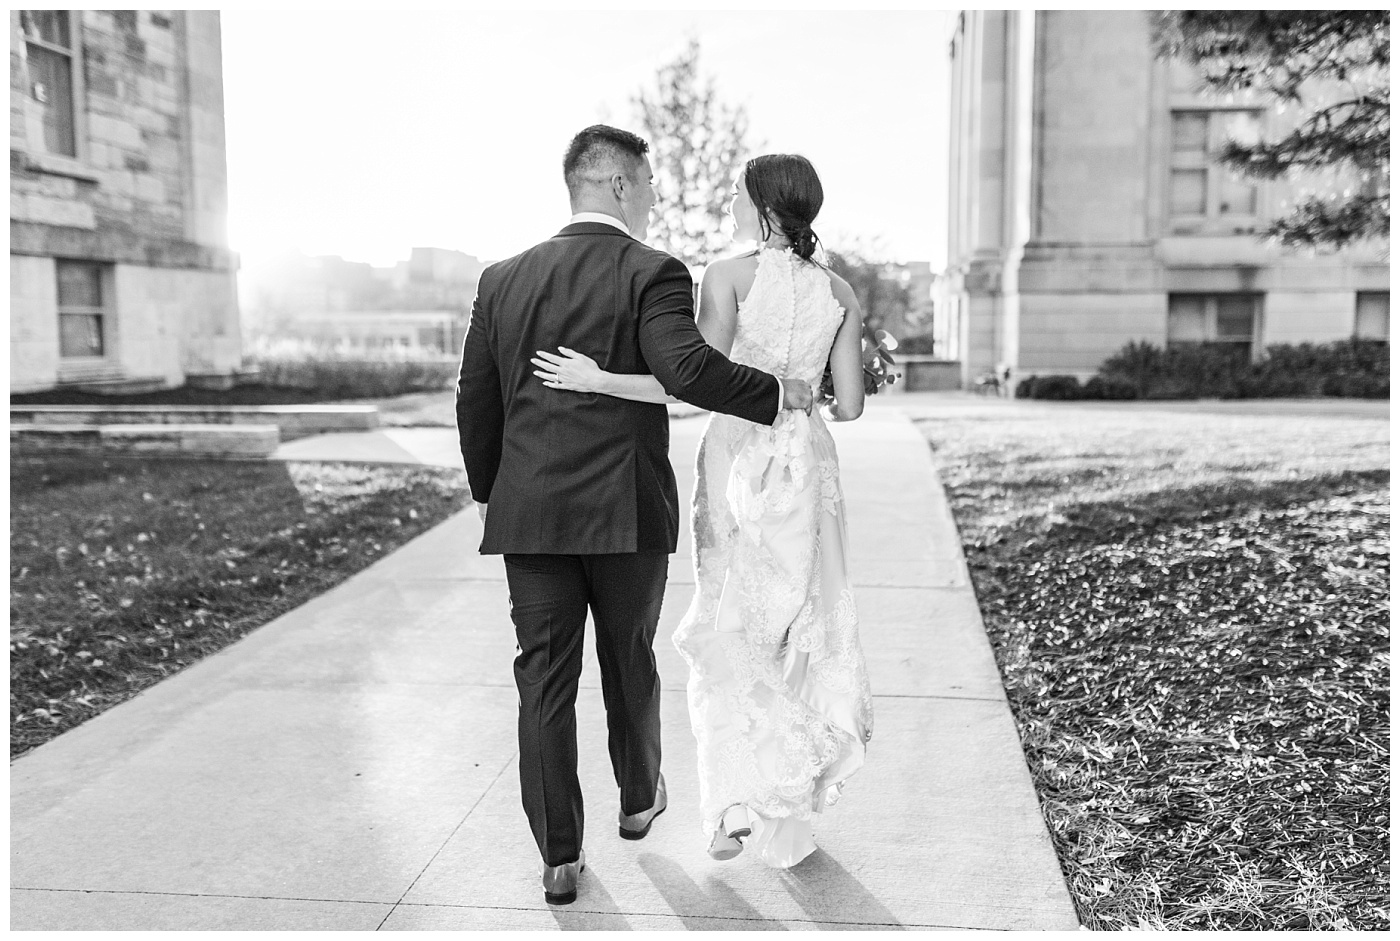 Stephanie Marie Photography Unitarian Universalist Society Church Ceremony Hotel Kirkwood Reception Cedar Rapids Iowa City Wedding Photographer Sean Madison Moore_0106.jpg